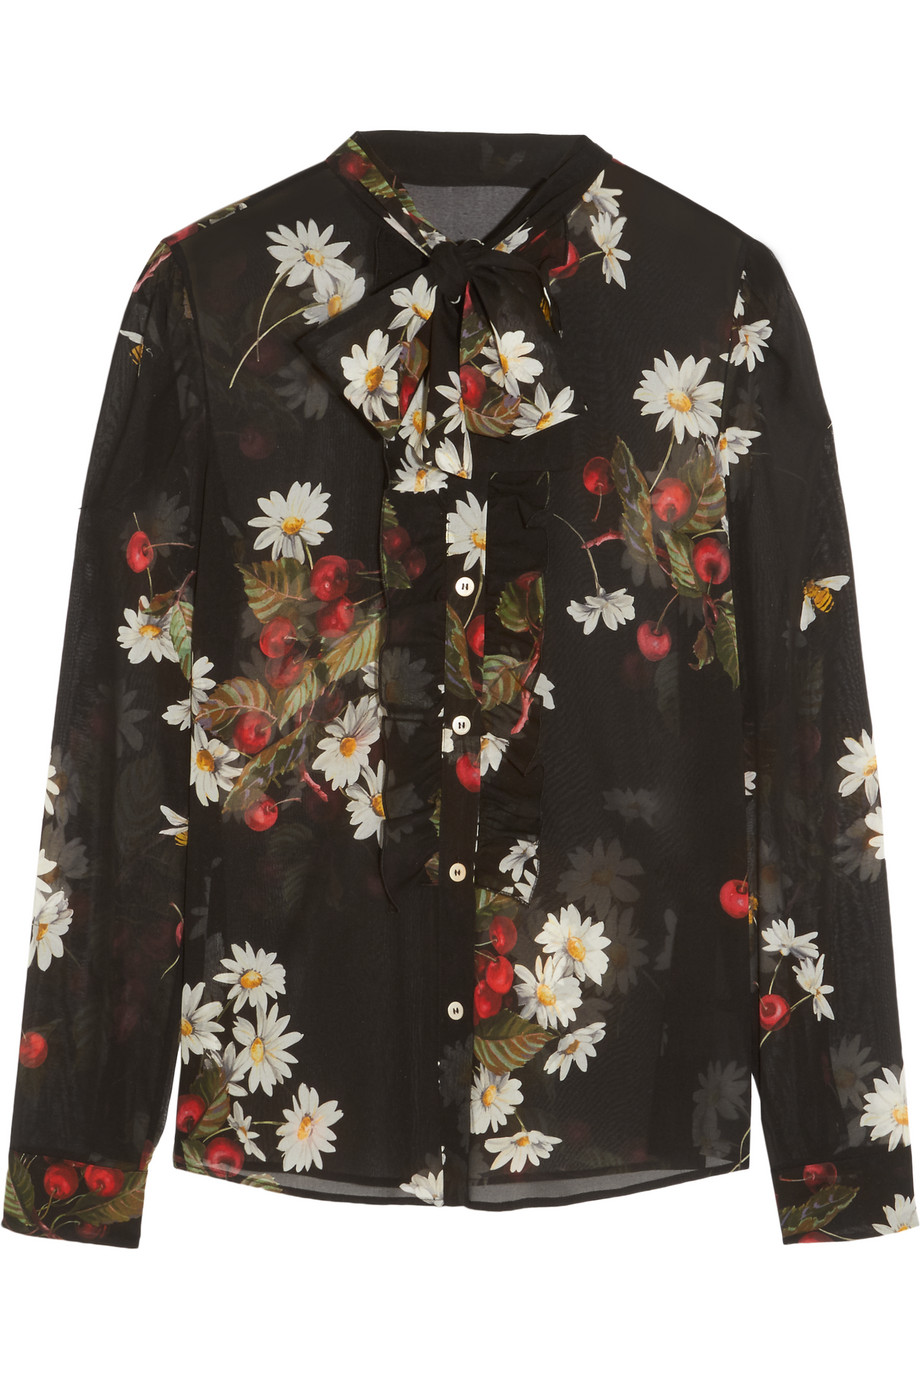 Redvalentino Pussy-Bow Floral-Print Silk-Blend Chiffon Blouse, Black, Women's, Size: 40